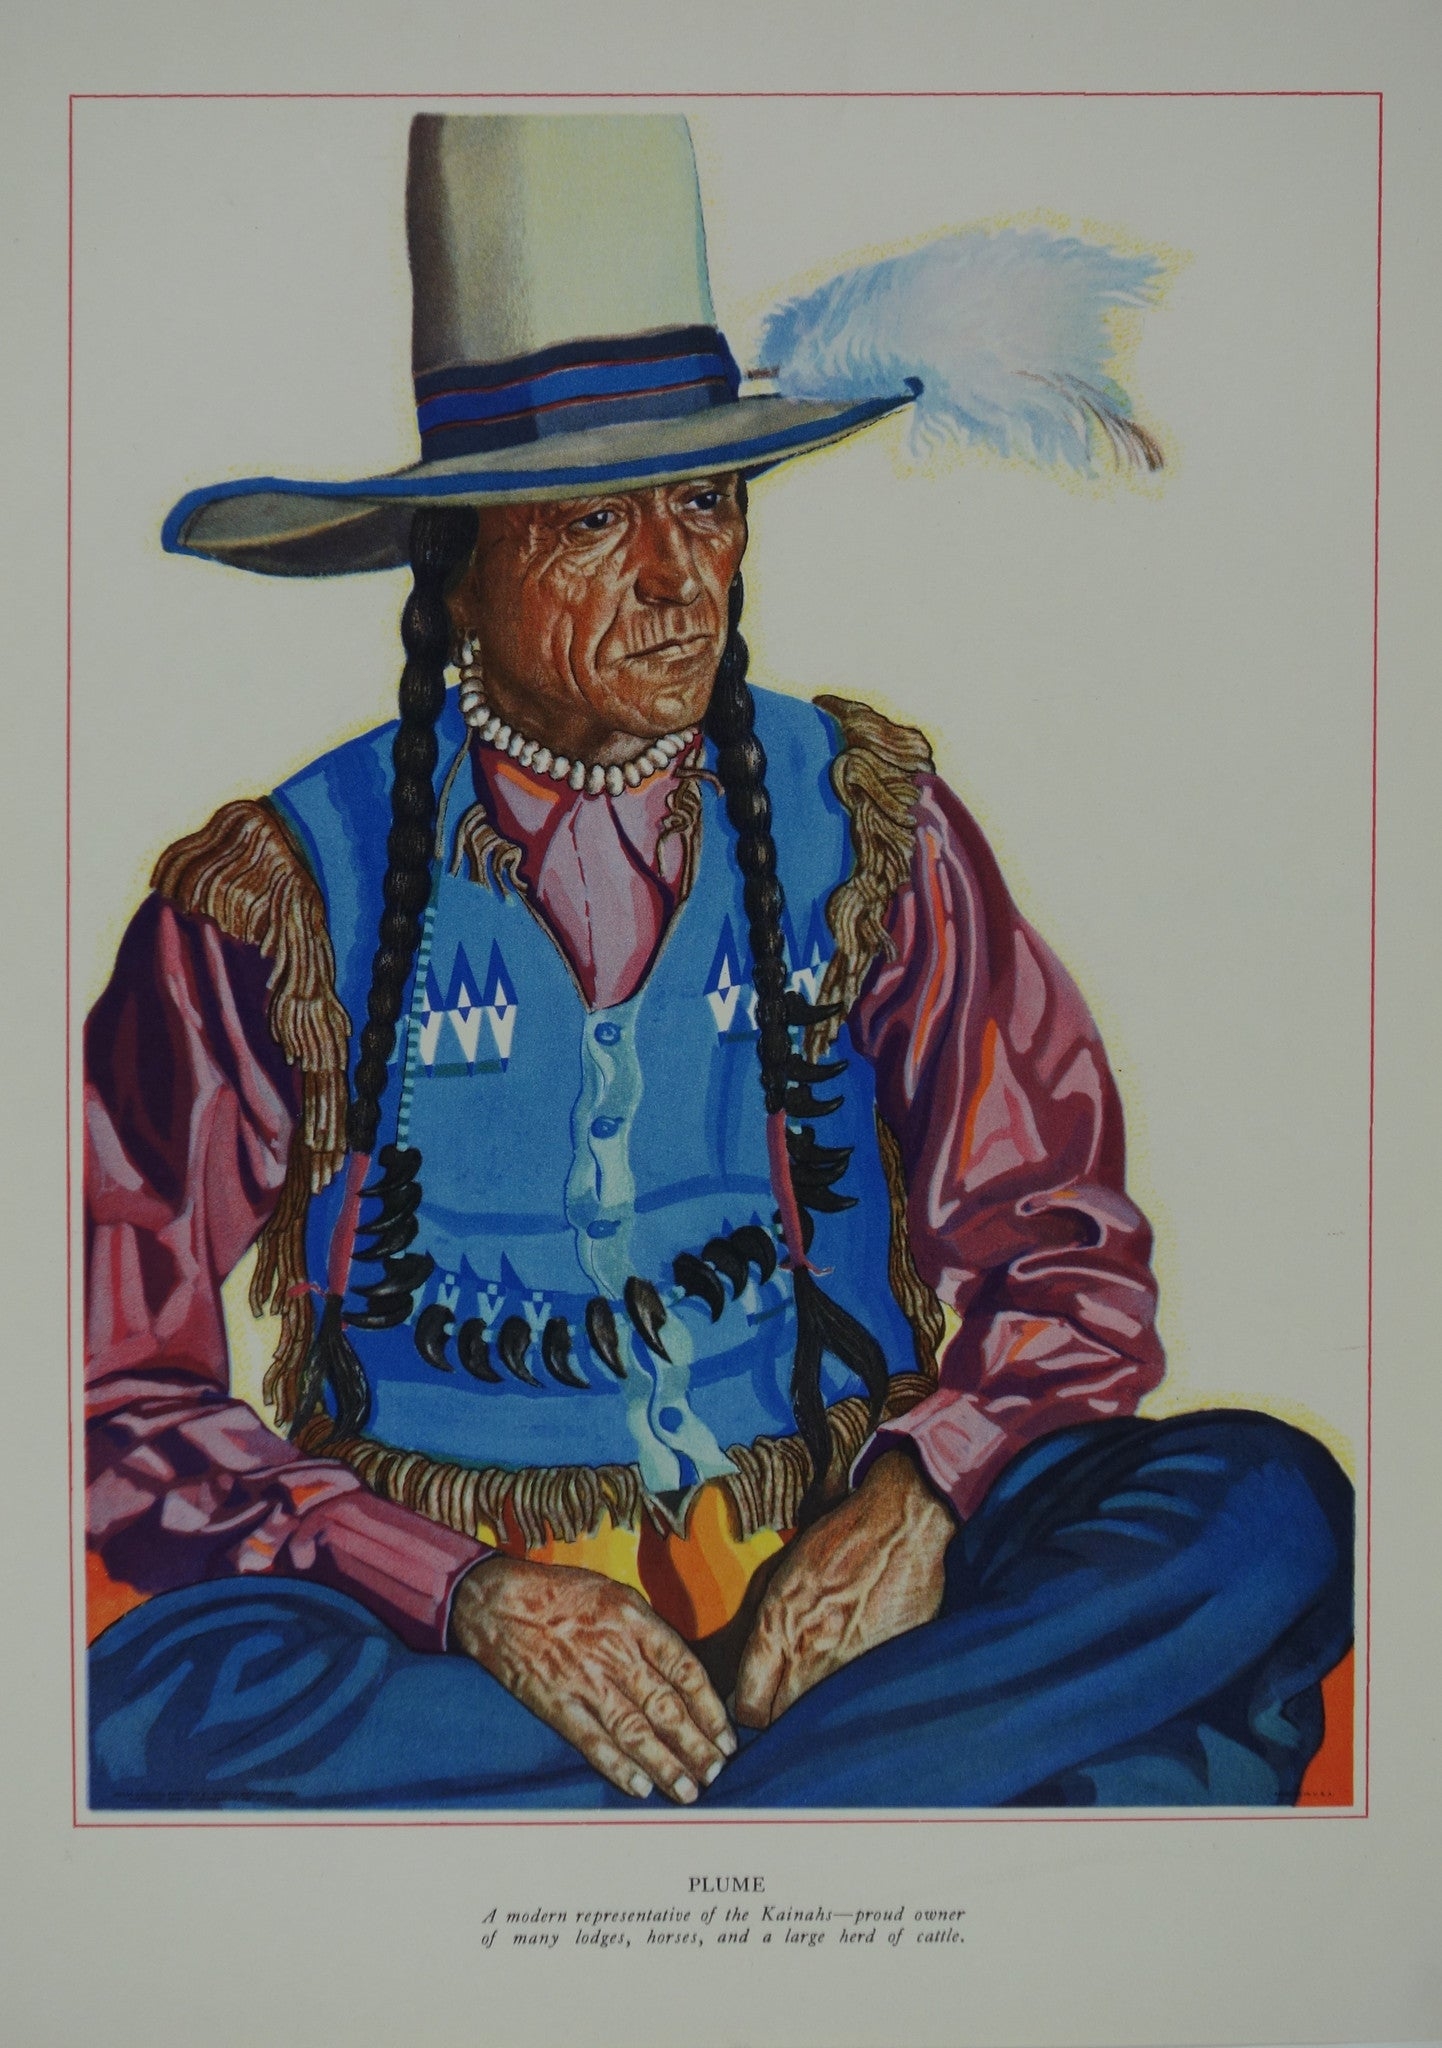 Portrait of Blackfeet Indian - Plume